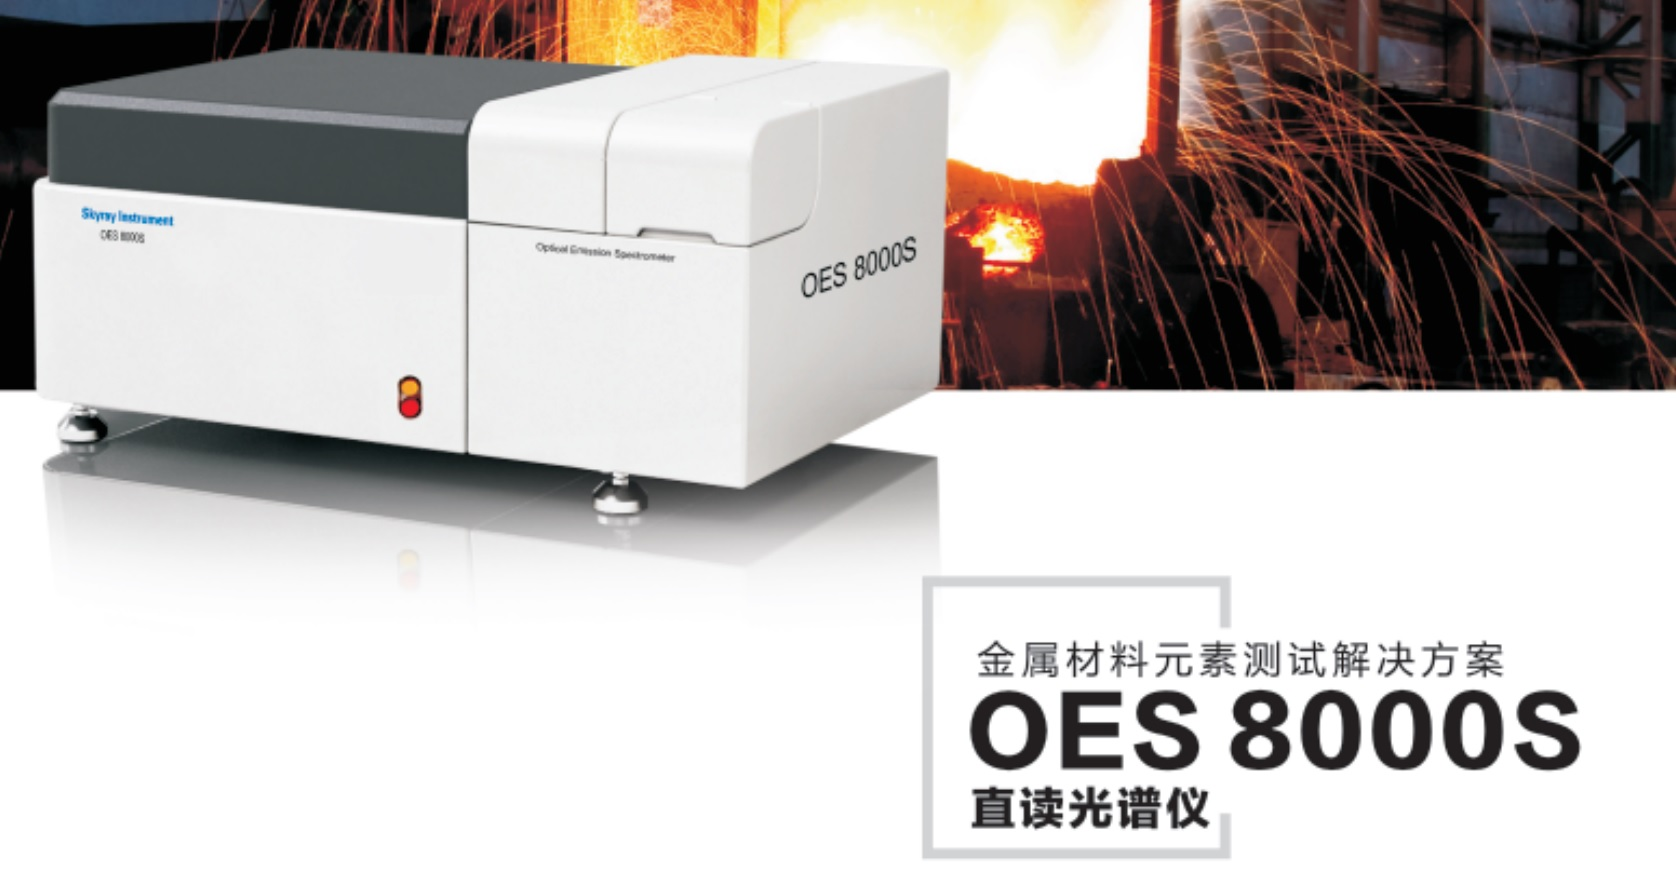 OES8000S-Jiangsu Skyray Instrument Co., Ltd.